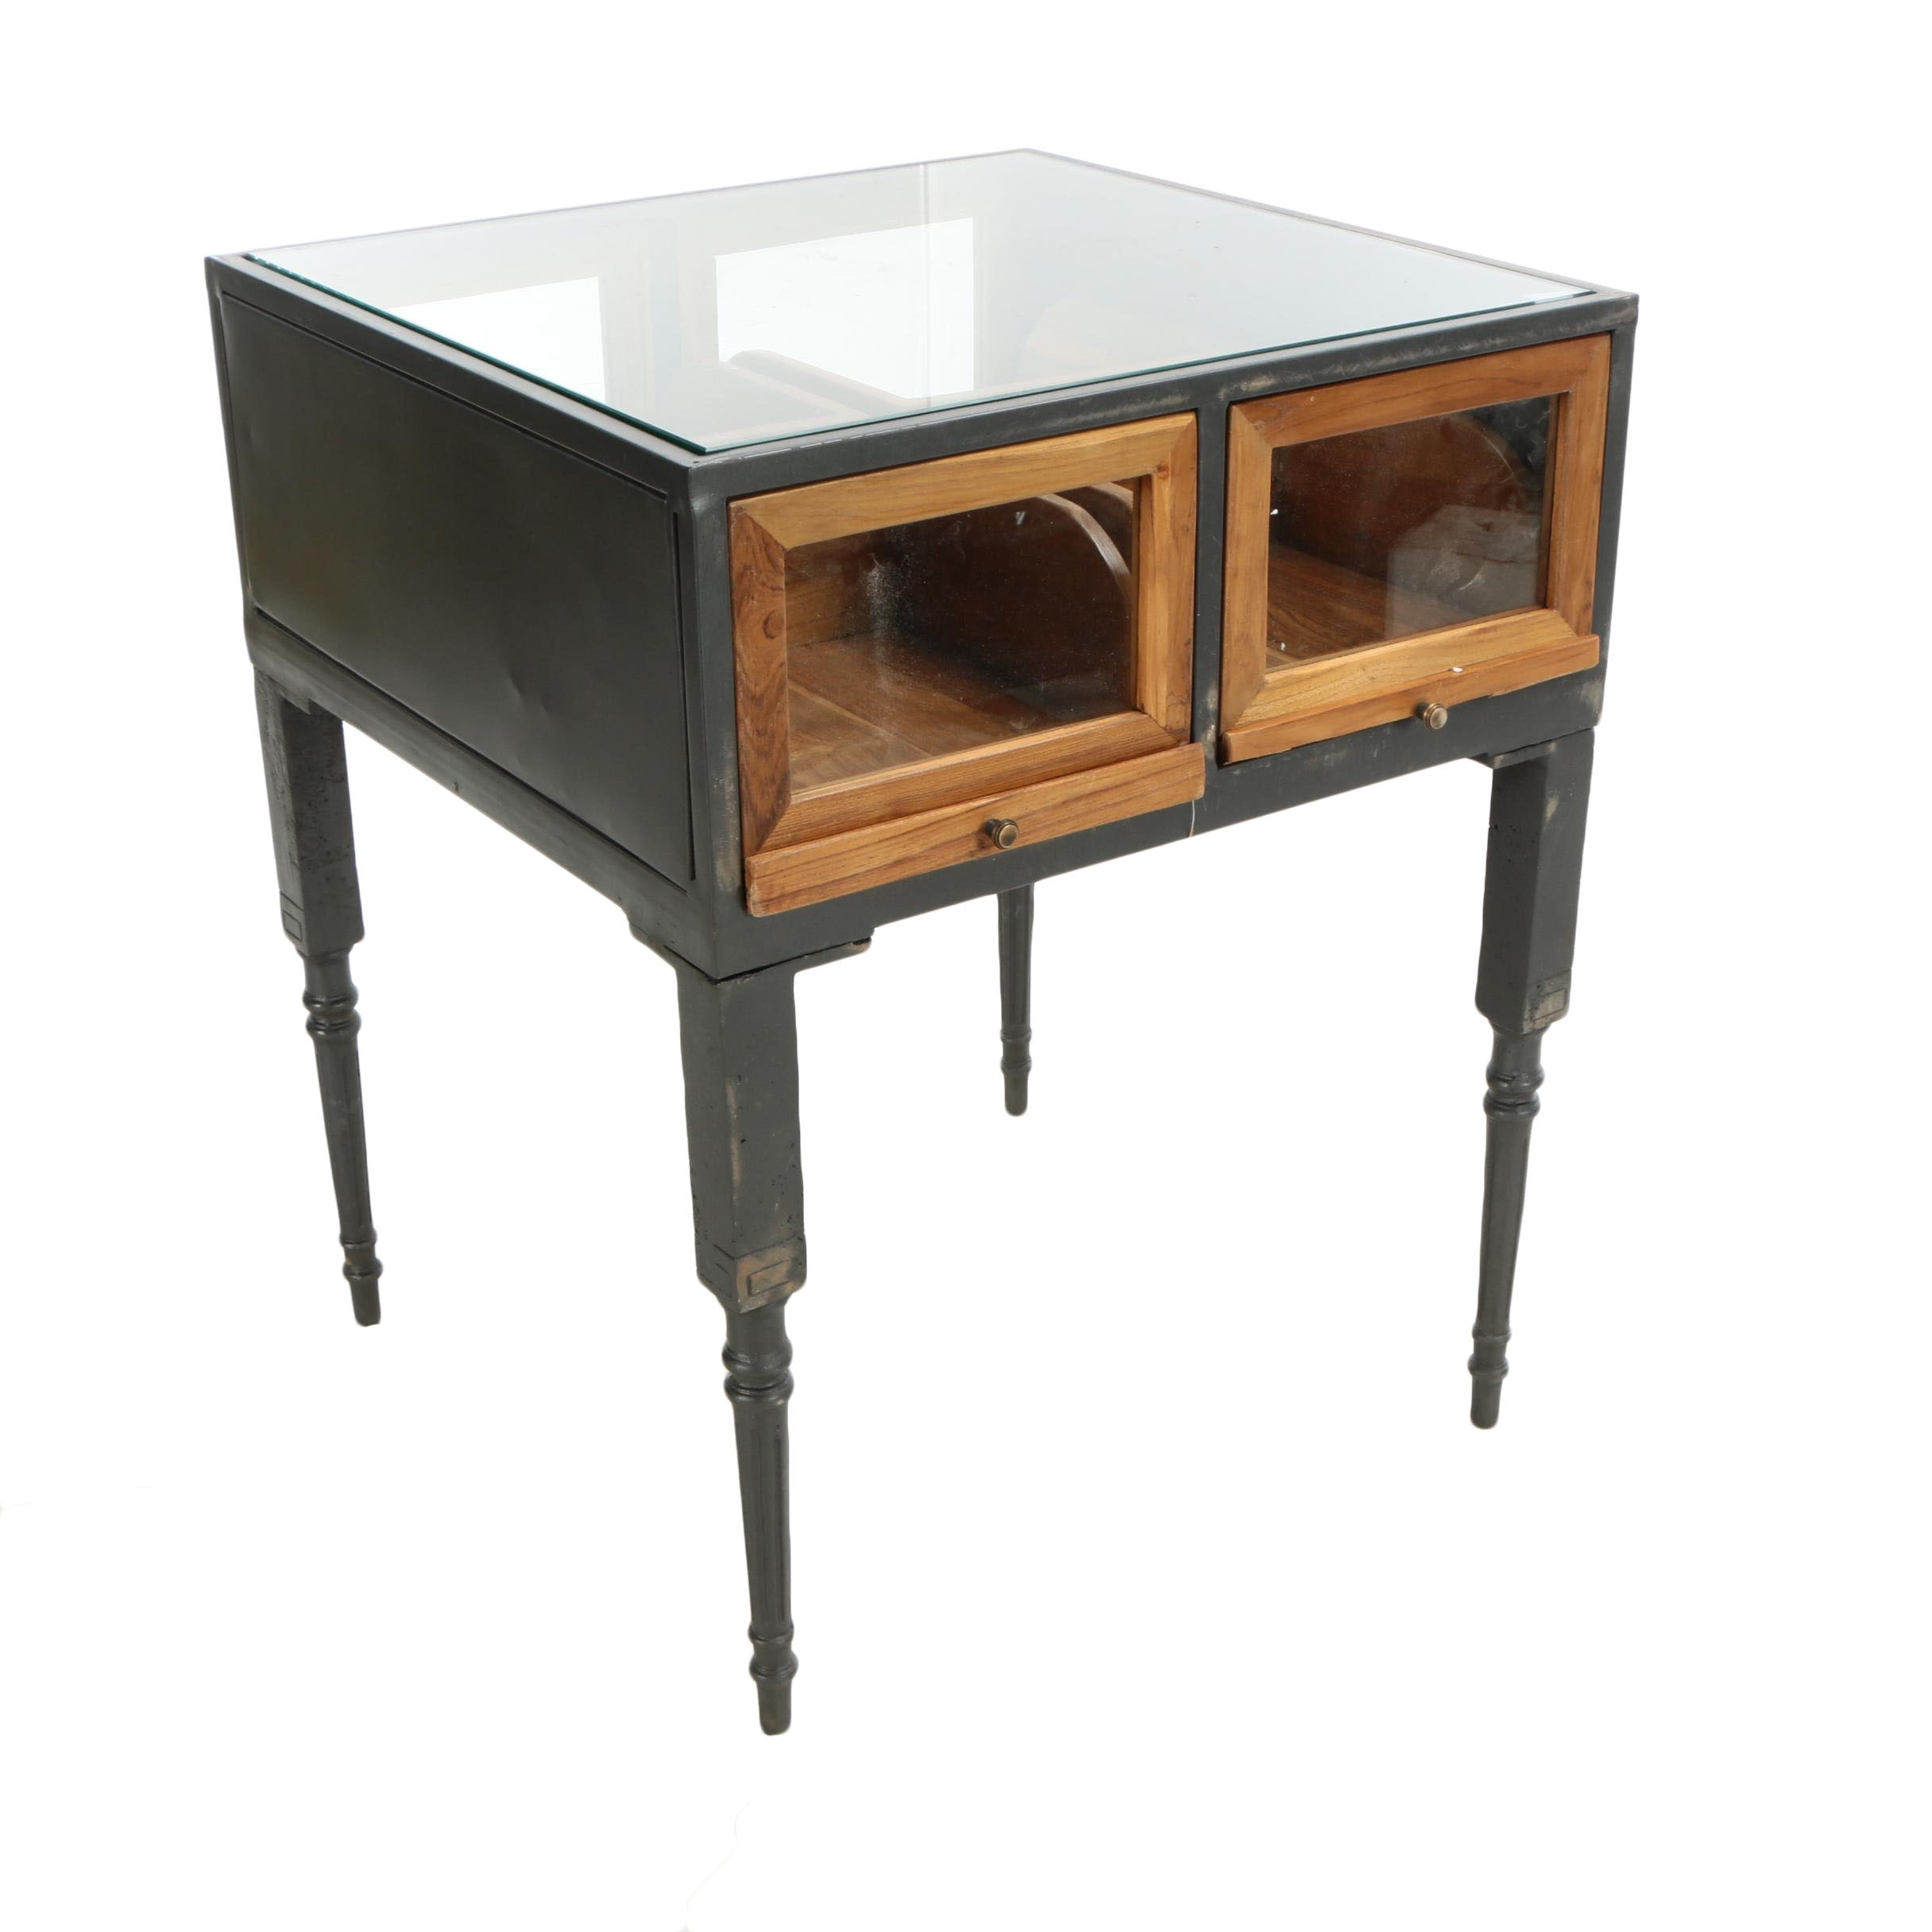 """Industrial Style """"Savile Row"""" Pine and Metal Square Shop Case, 21st Century"""